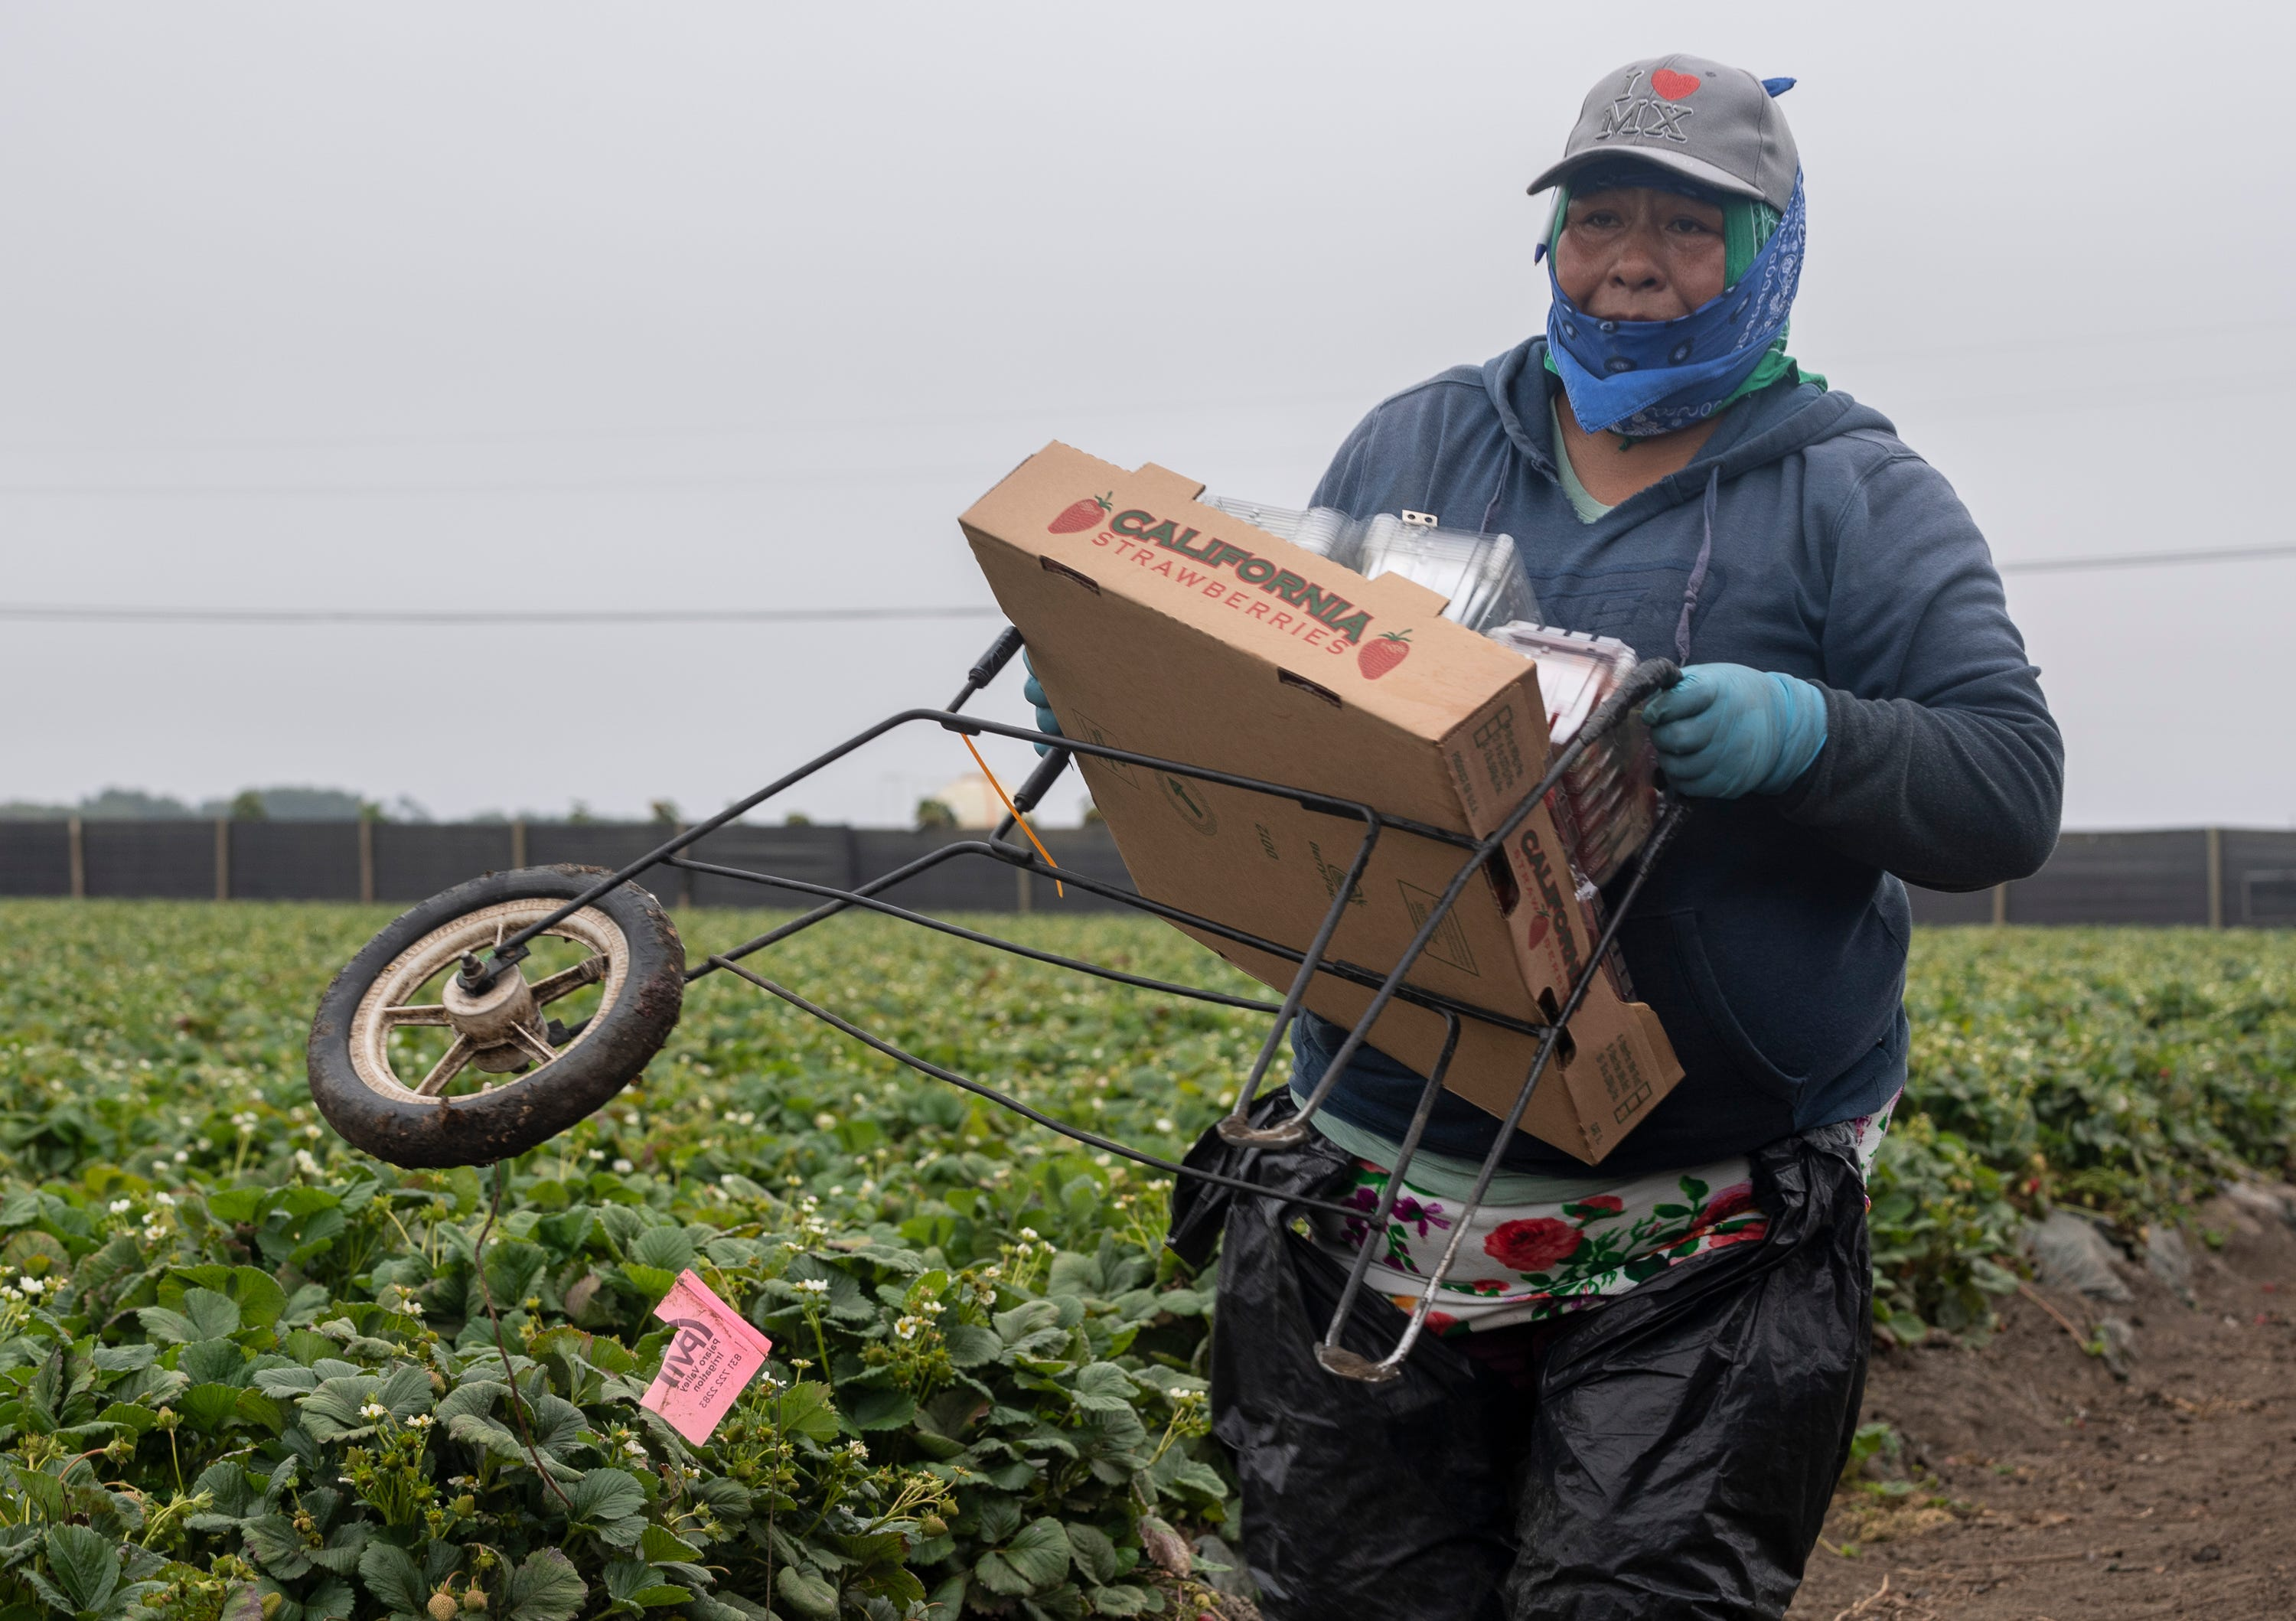 A woman carries her one-wheel cart that she uses to pick strawberries in Watsonville, Calif., on Wednesday, July 29, 2020.